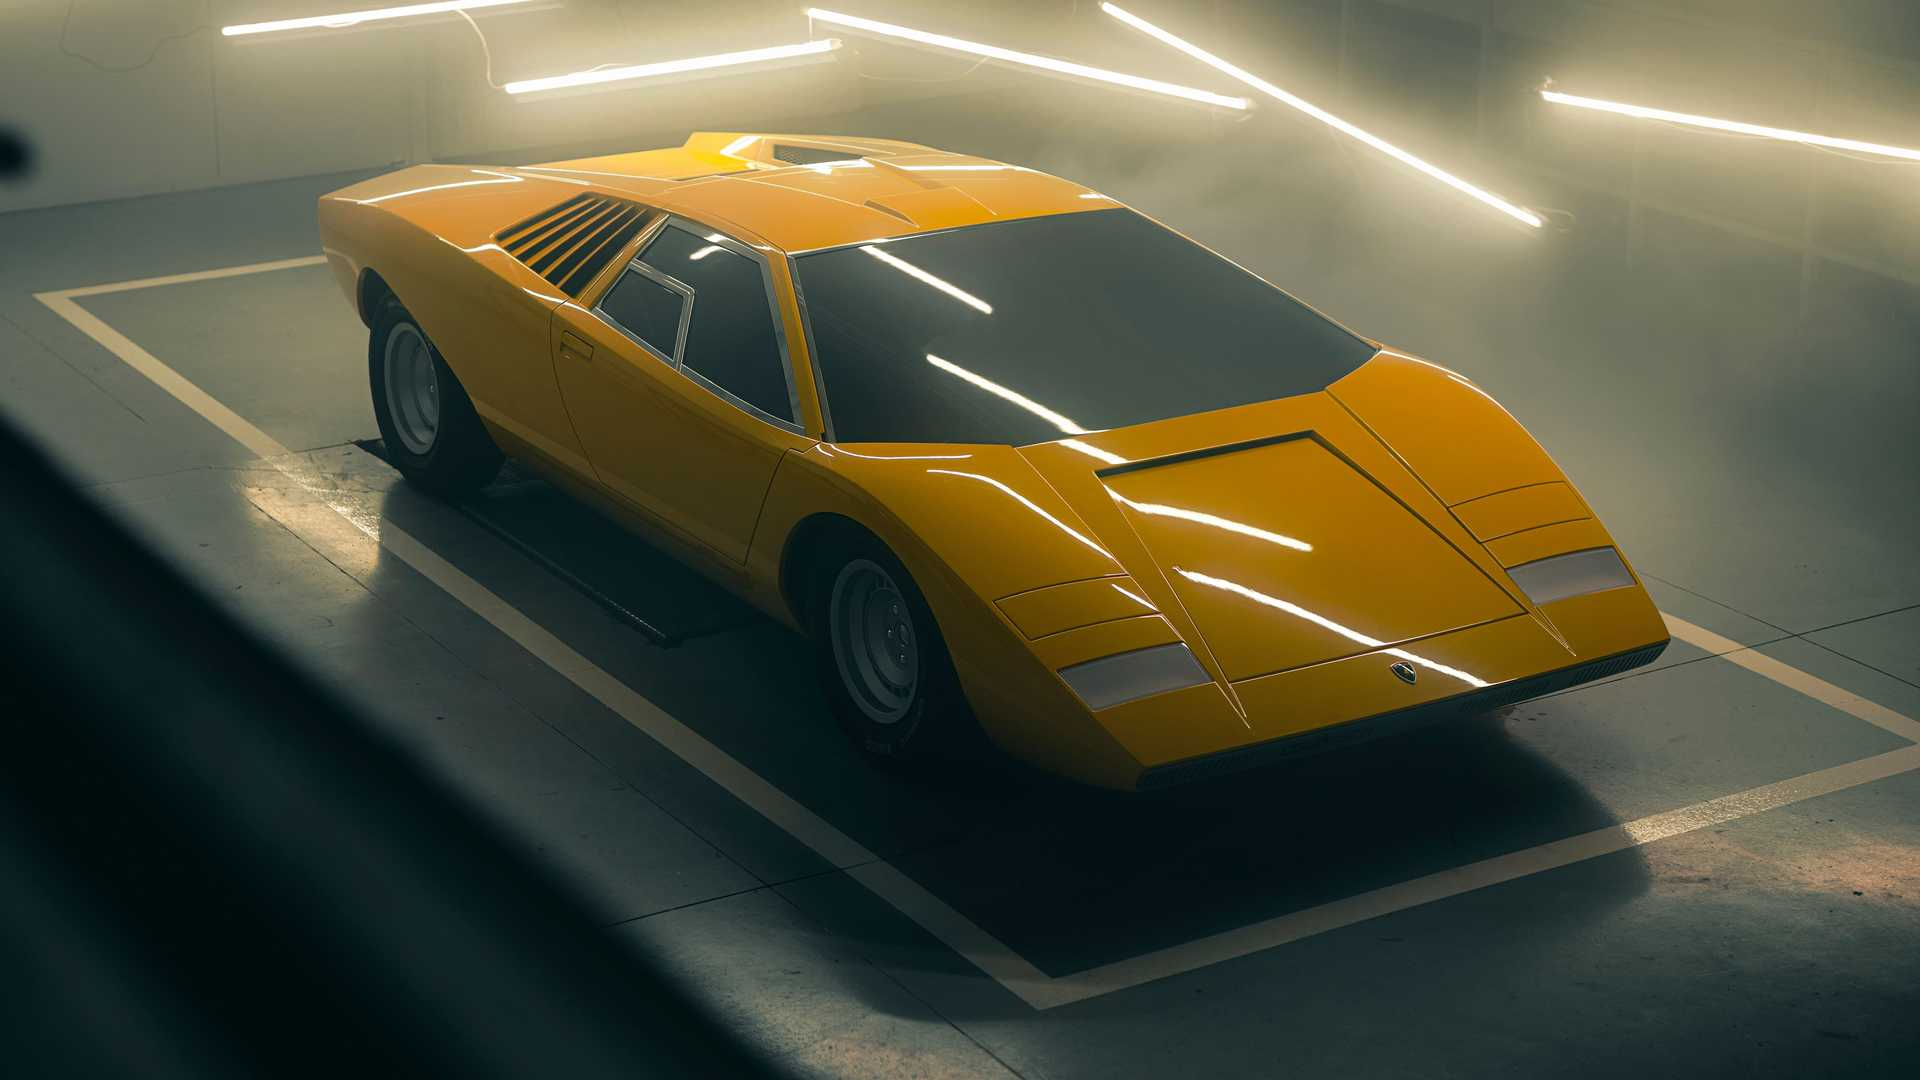 1971 Lamborghini Countach LP 500 Reconstruction Debuts After 25,000 Hours Of Work